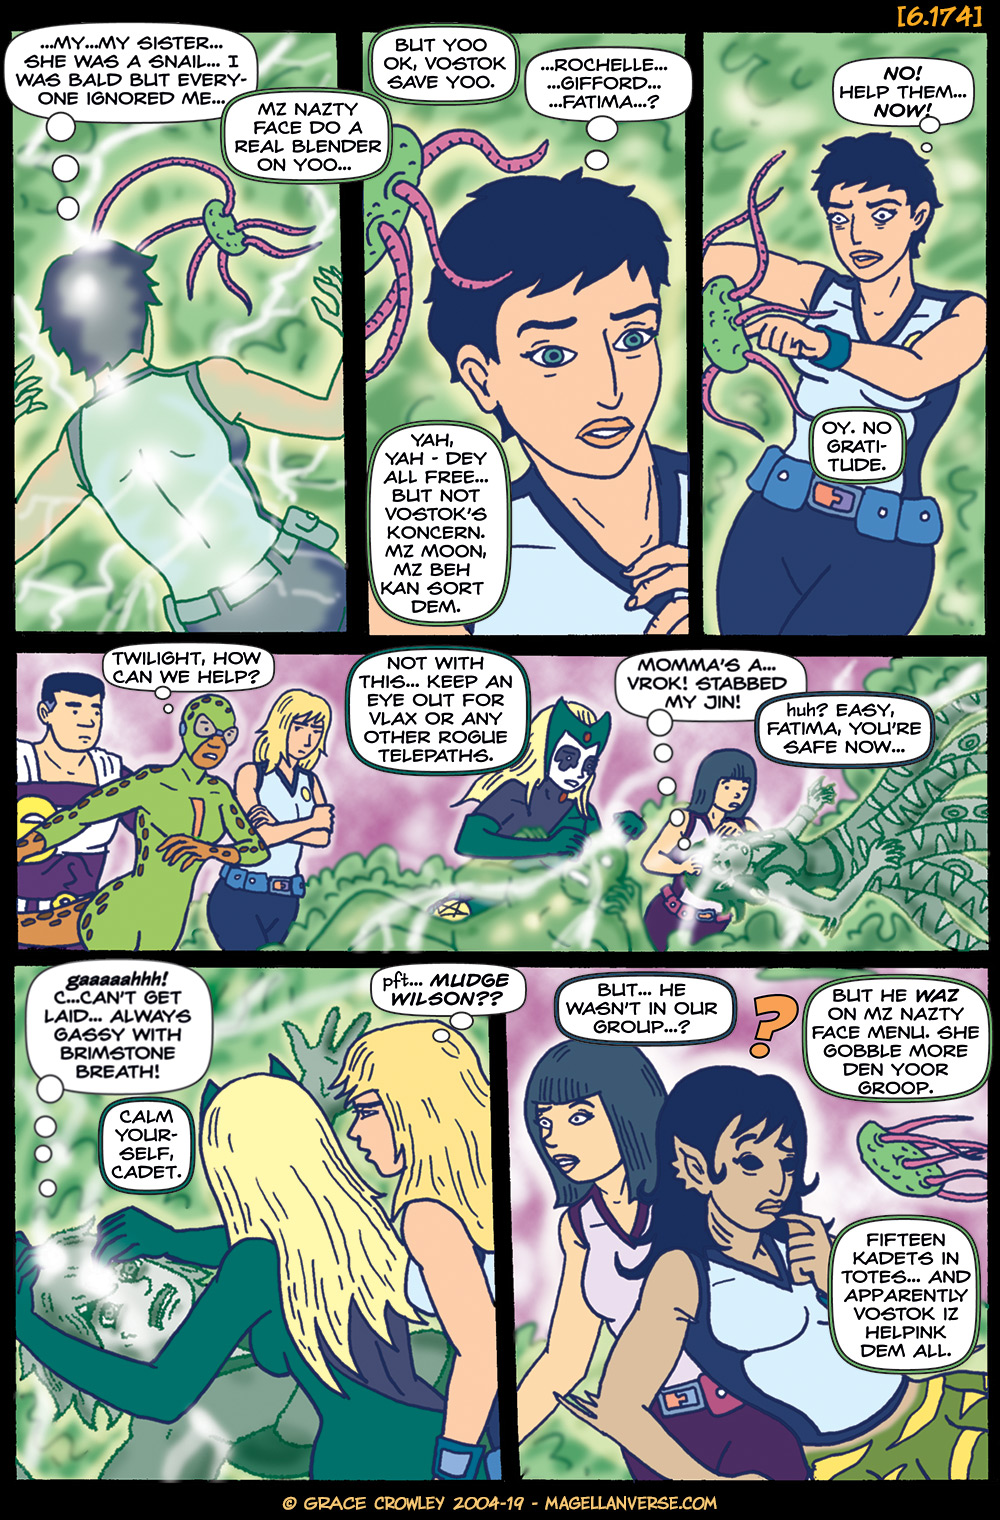 Page 6.174